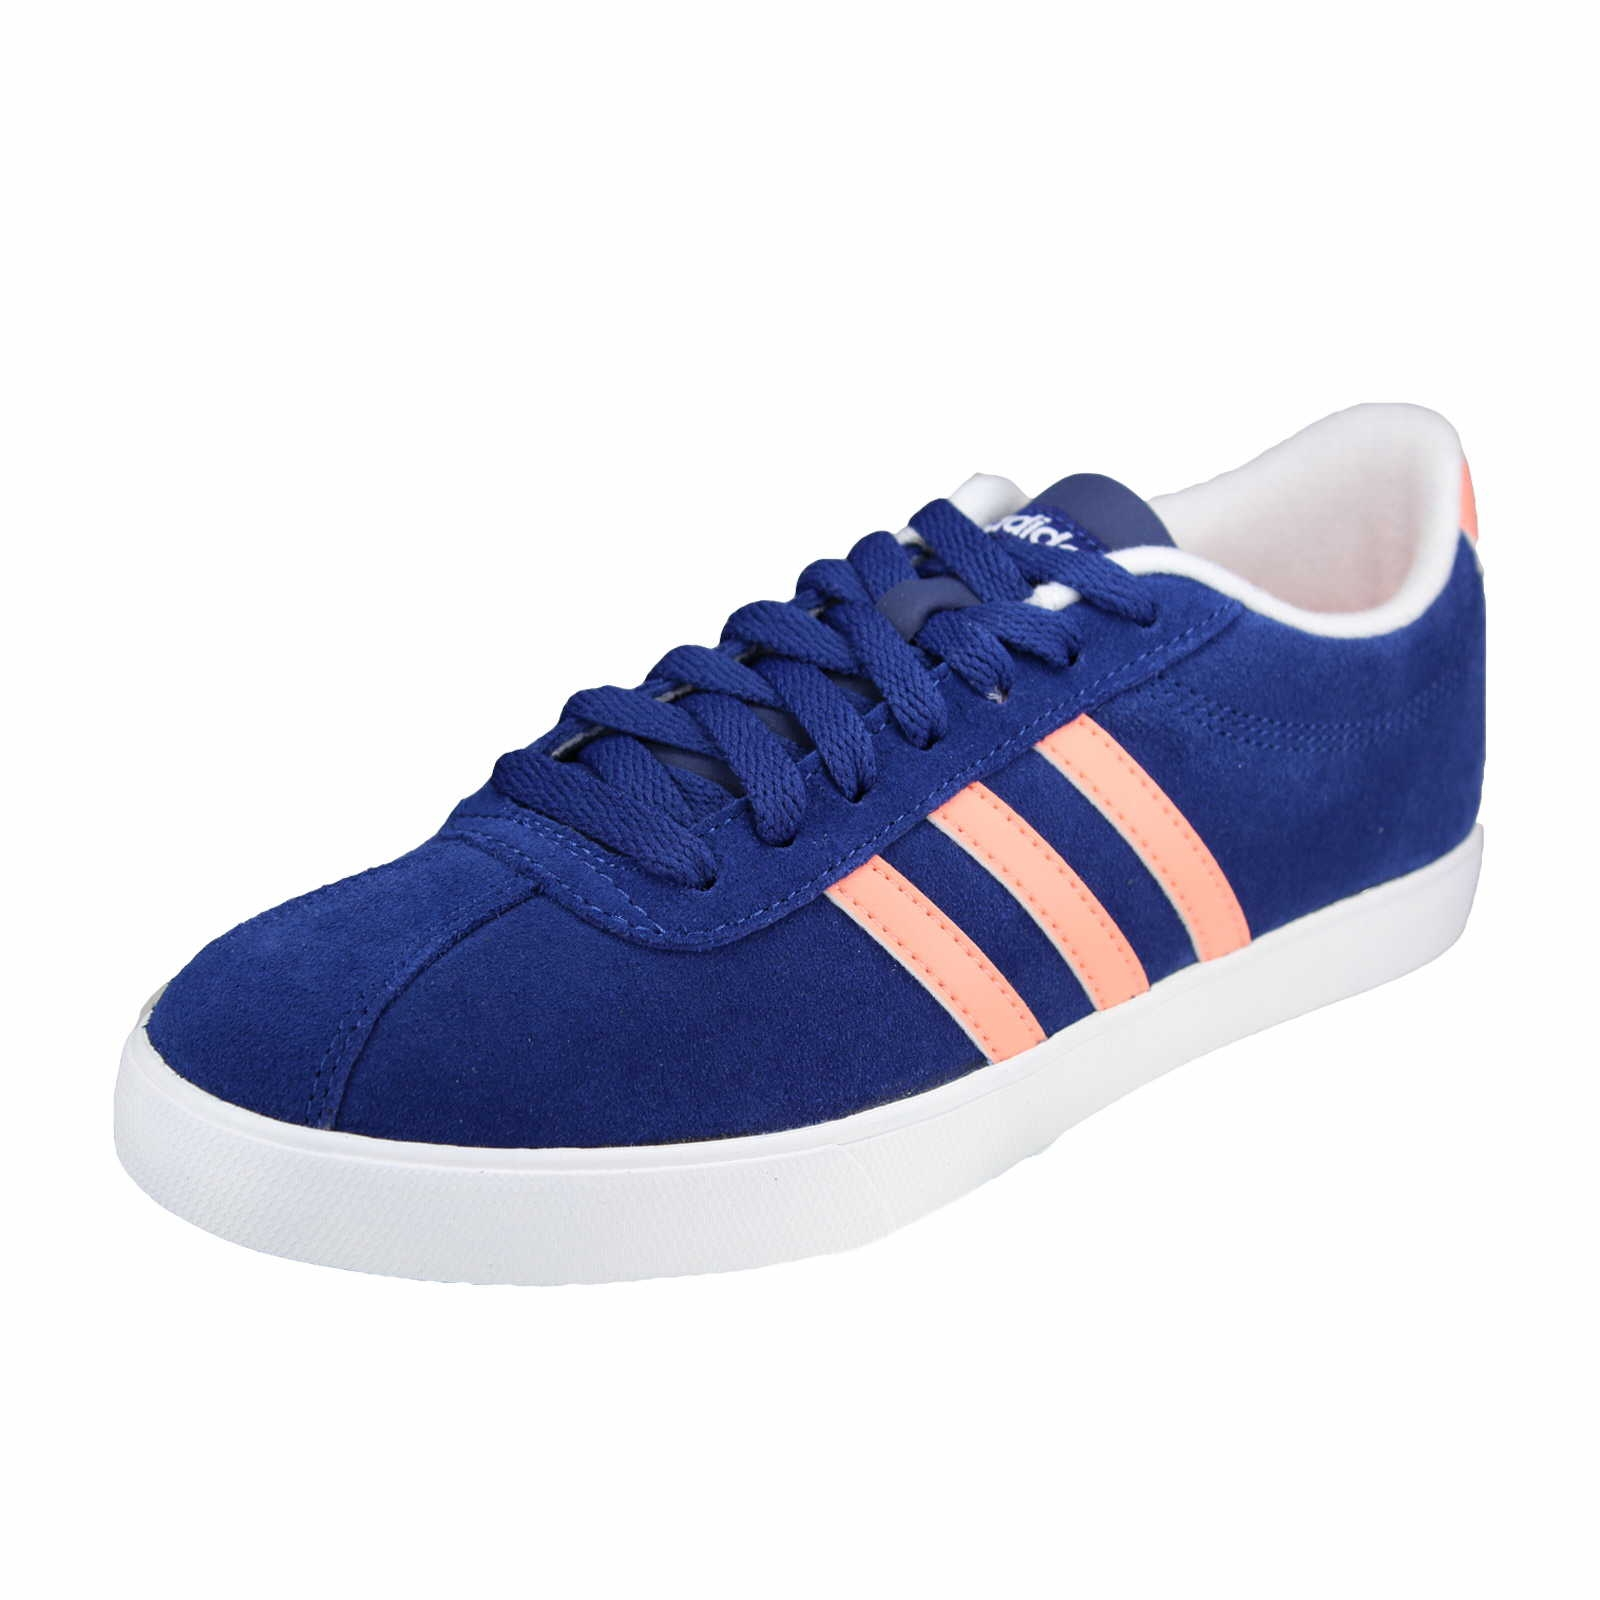 adidas neo courtset w ink sunglow in blau schuhparadies. Black Bedroom Furniture Sets. Home Design Ideas